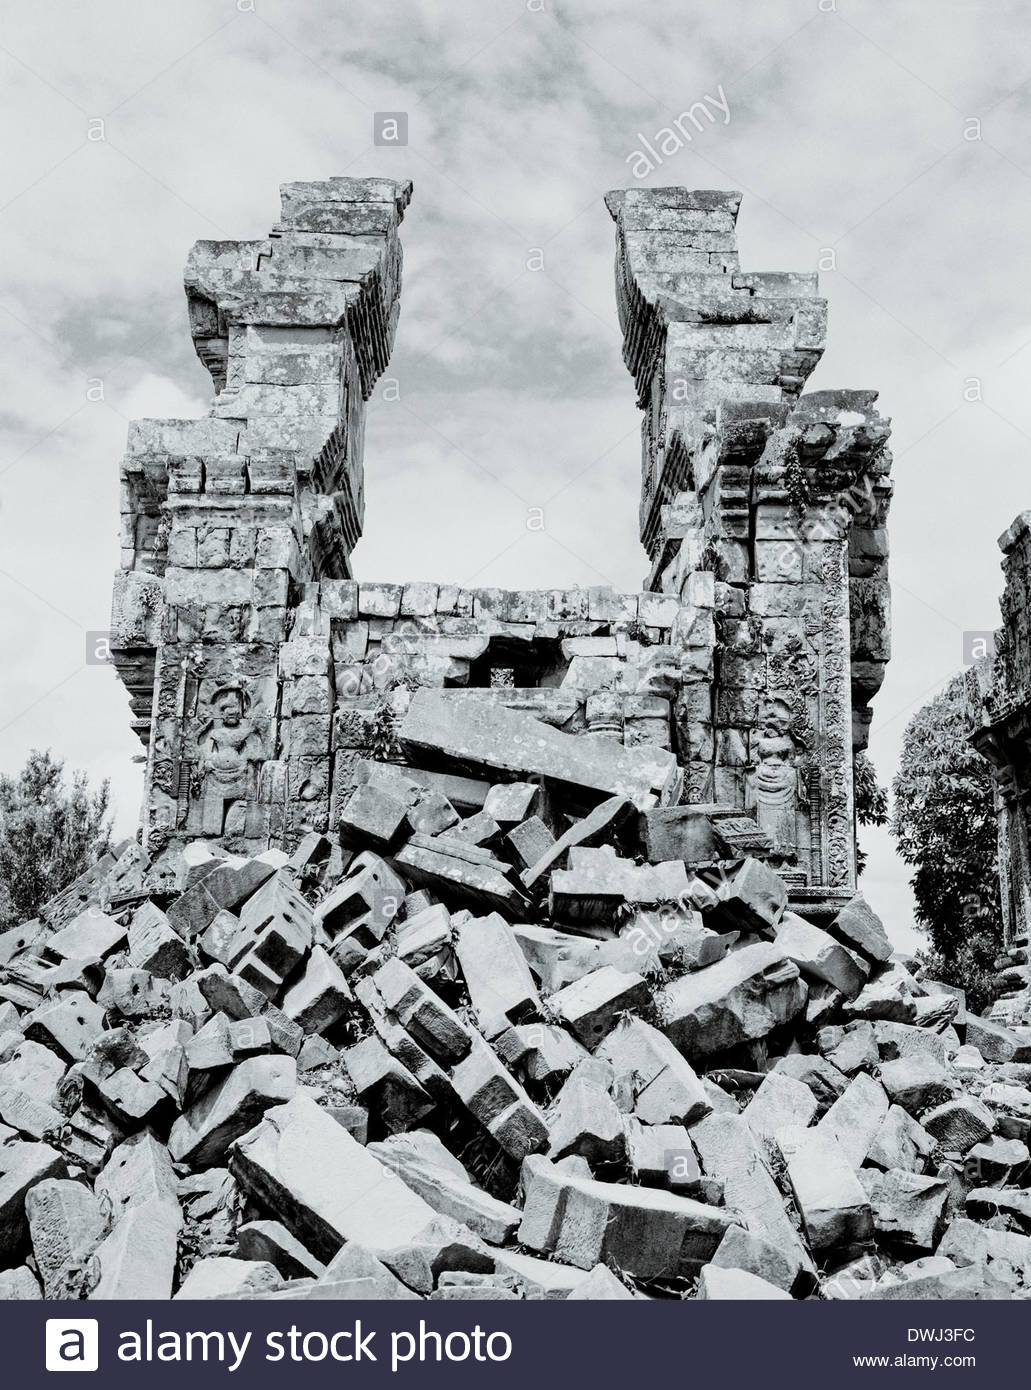 The ruined towers of Phnon Bok, Siem Reap, Siem Reap province, Cambodia, South East Asia. - Stock Image